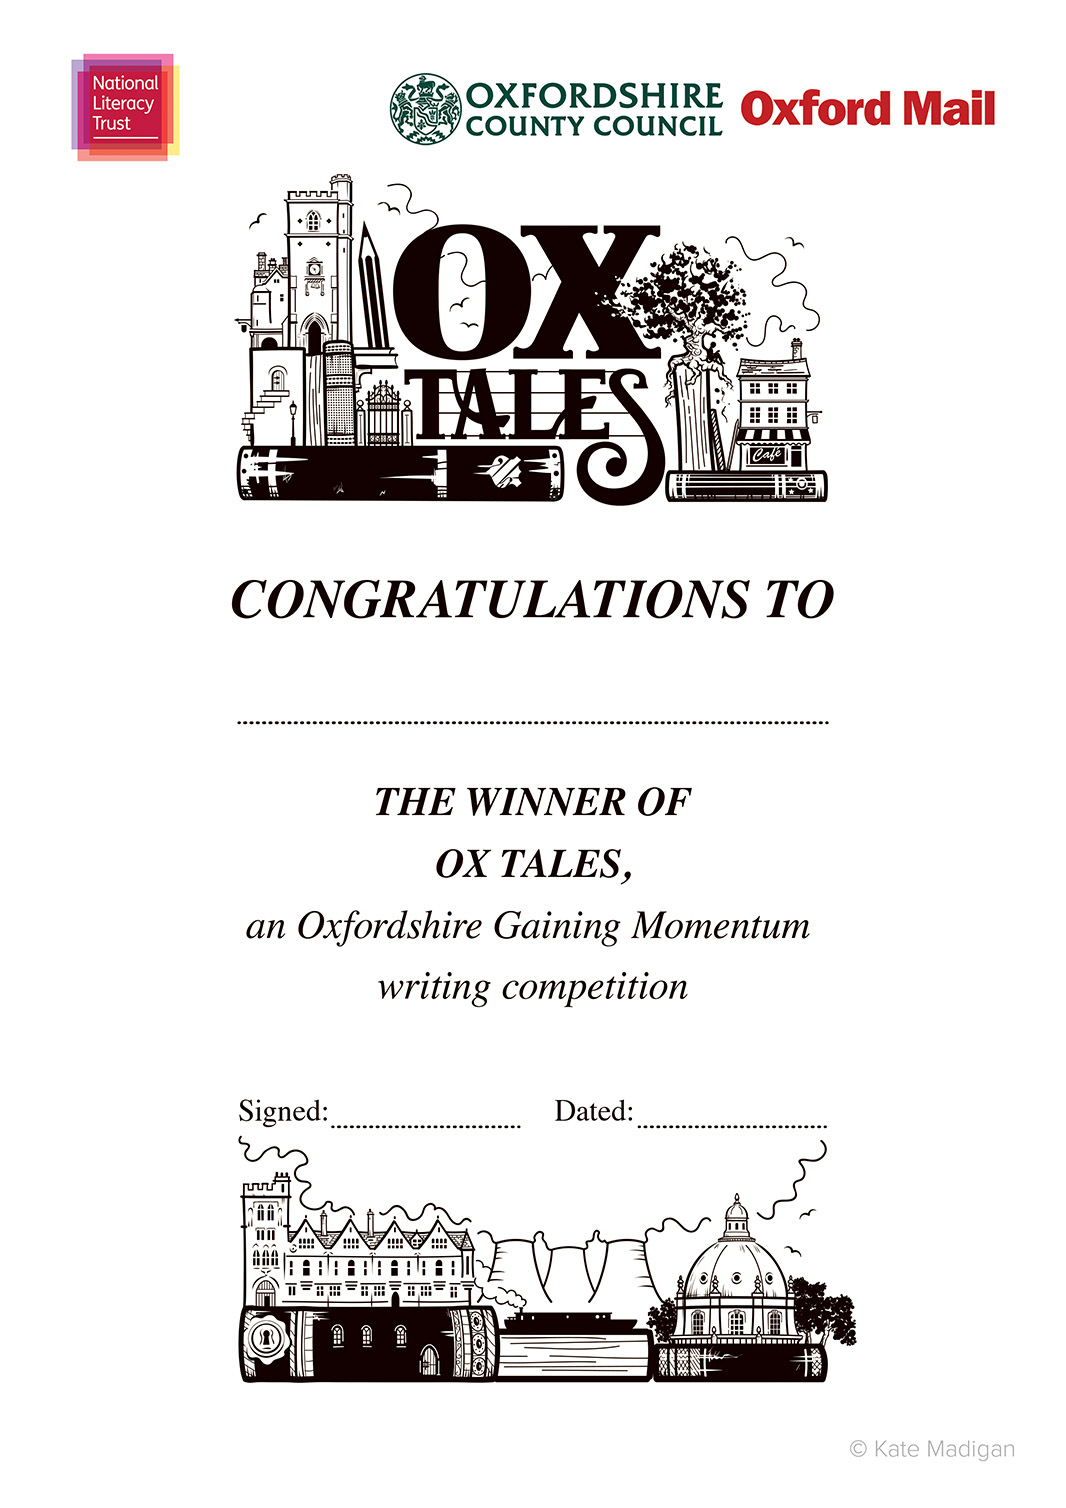 Winner's certificate design for the National Literacy Trust, featuring Oxfordshire landmarks (Carfax Tower, cafes, Brasenose College, Didcot Power Station, the Radcliffe Camera, a canal boat  ), books, pens, pencils, a tablet computer or phone  and decorative typography  .Copyright Kate Madigan.